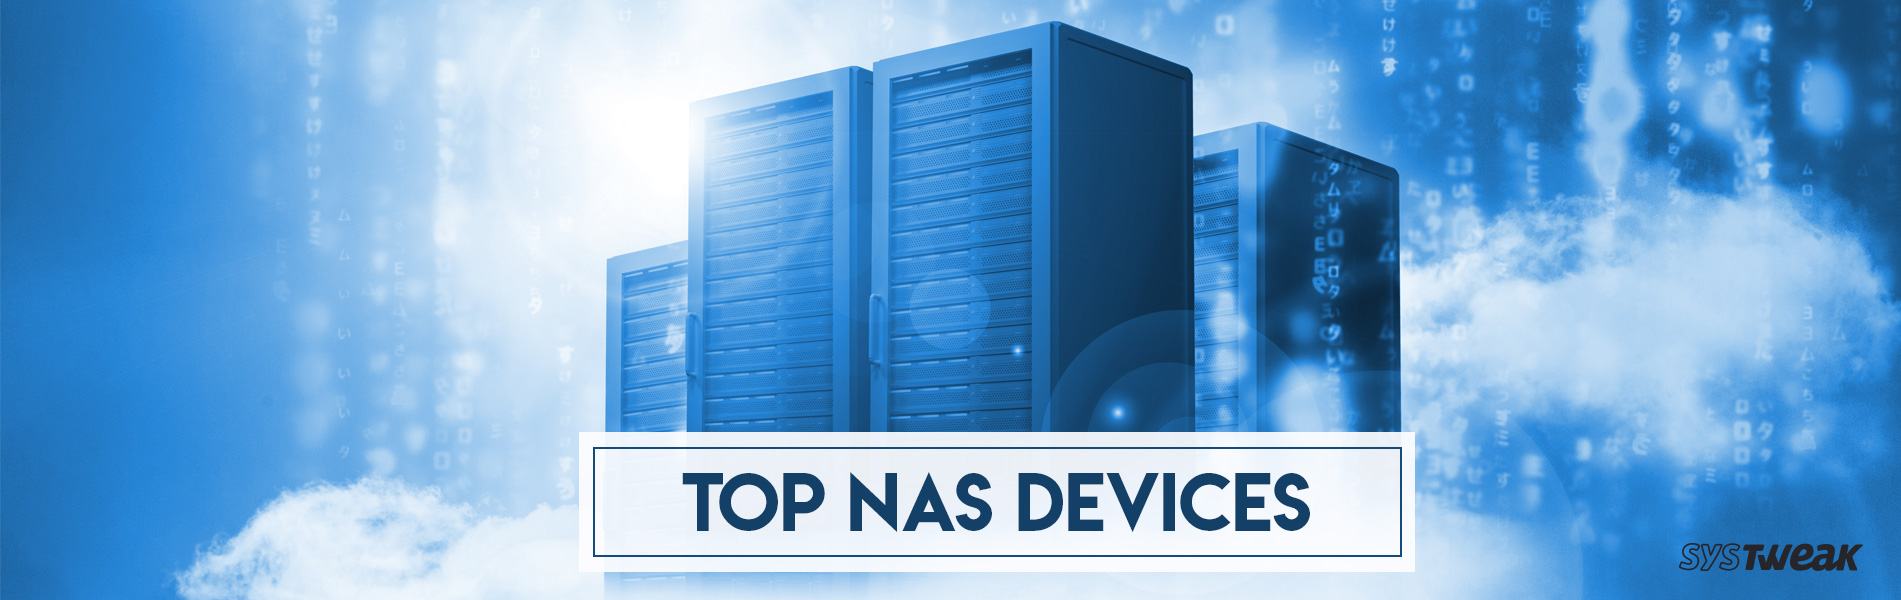 Low on Storage? Get These Top NAS Devices